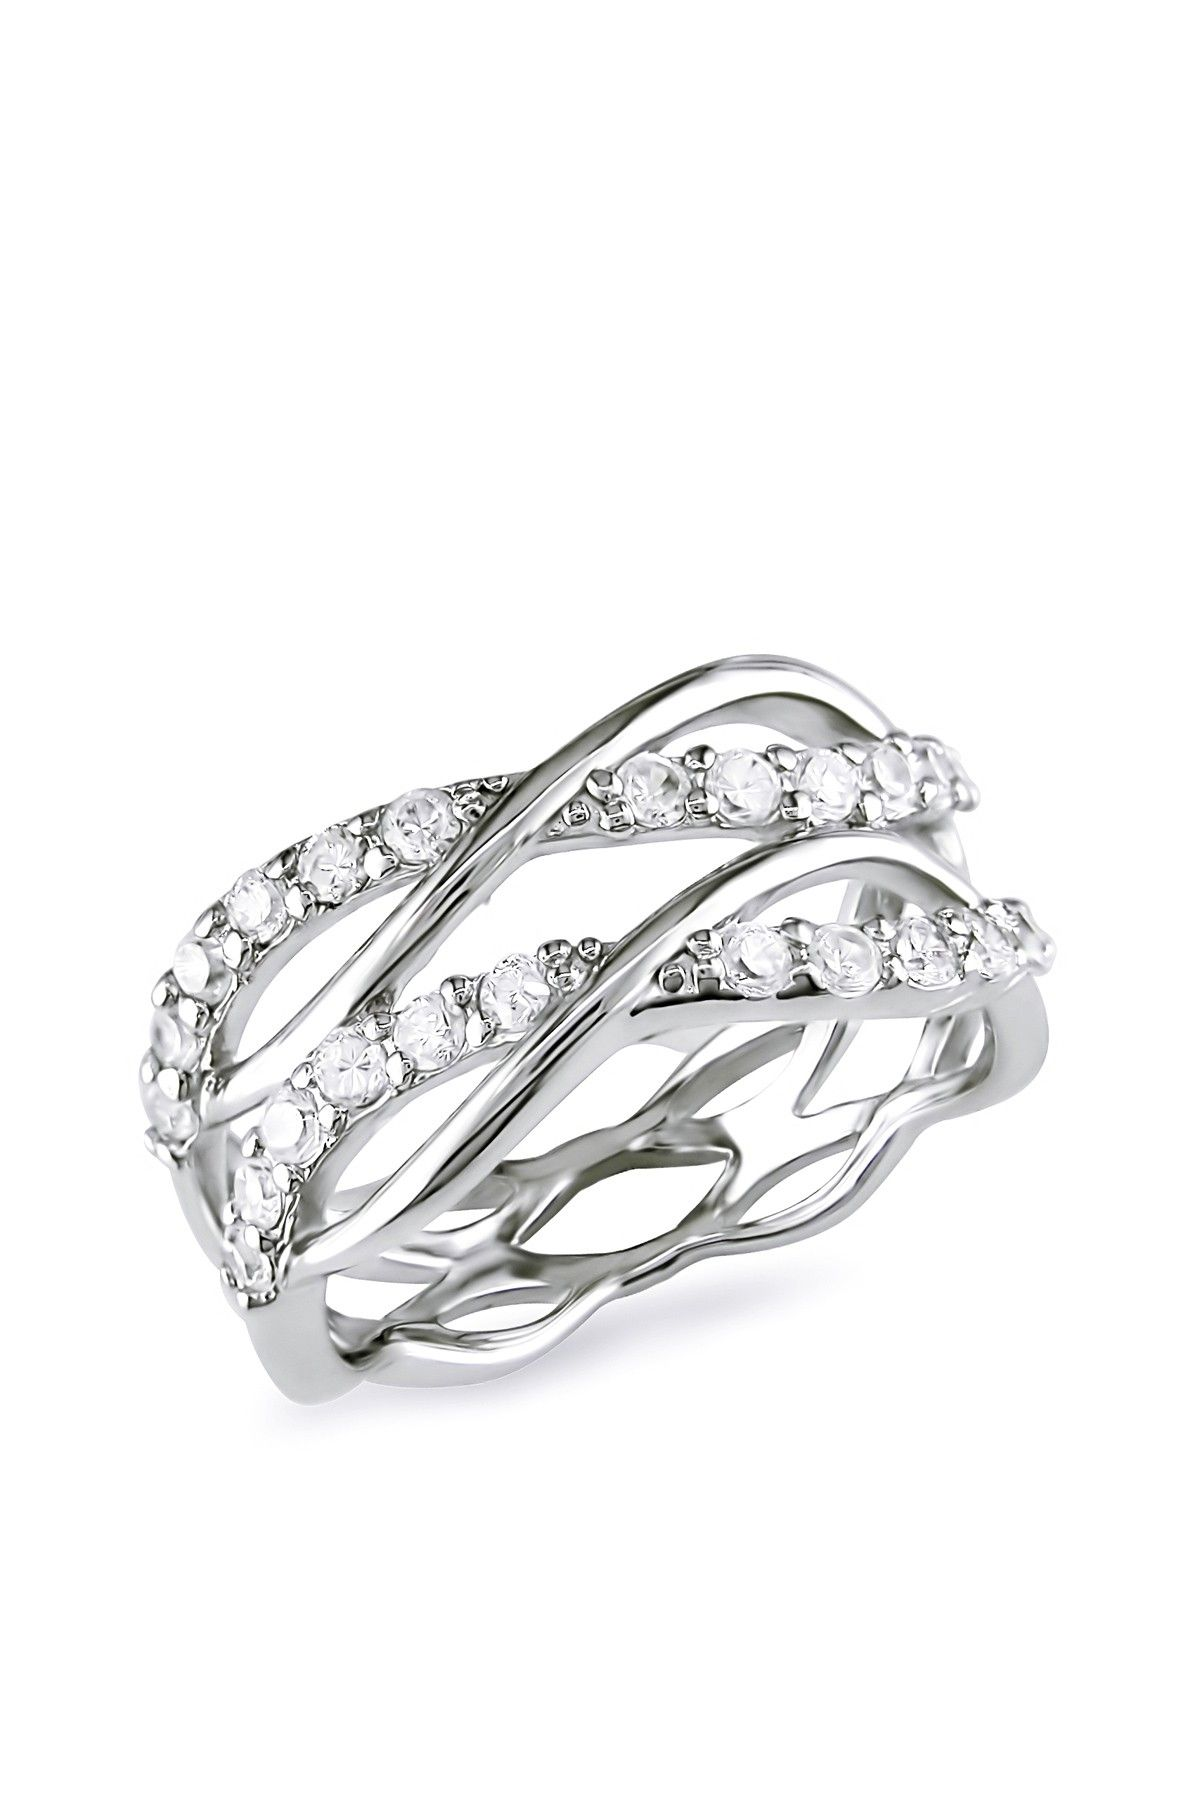 Beautiful Sterling Silver Cz Tiered Crisscross Ring